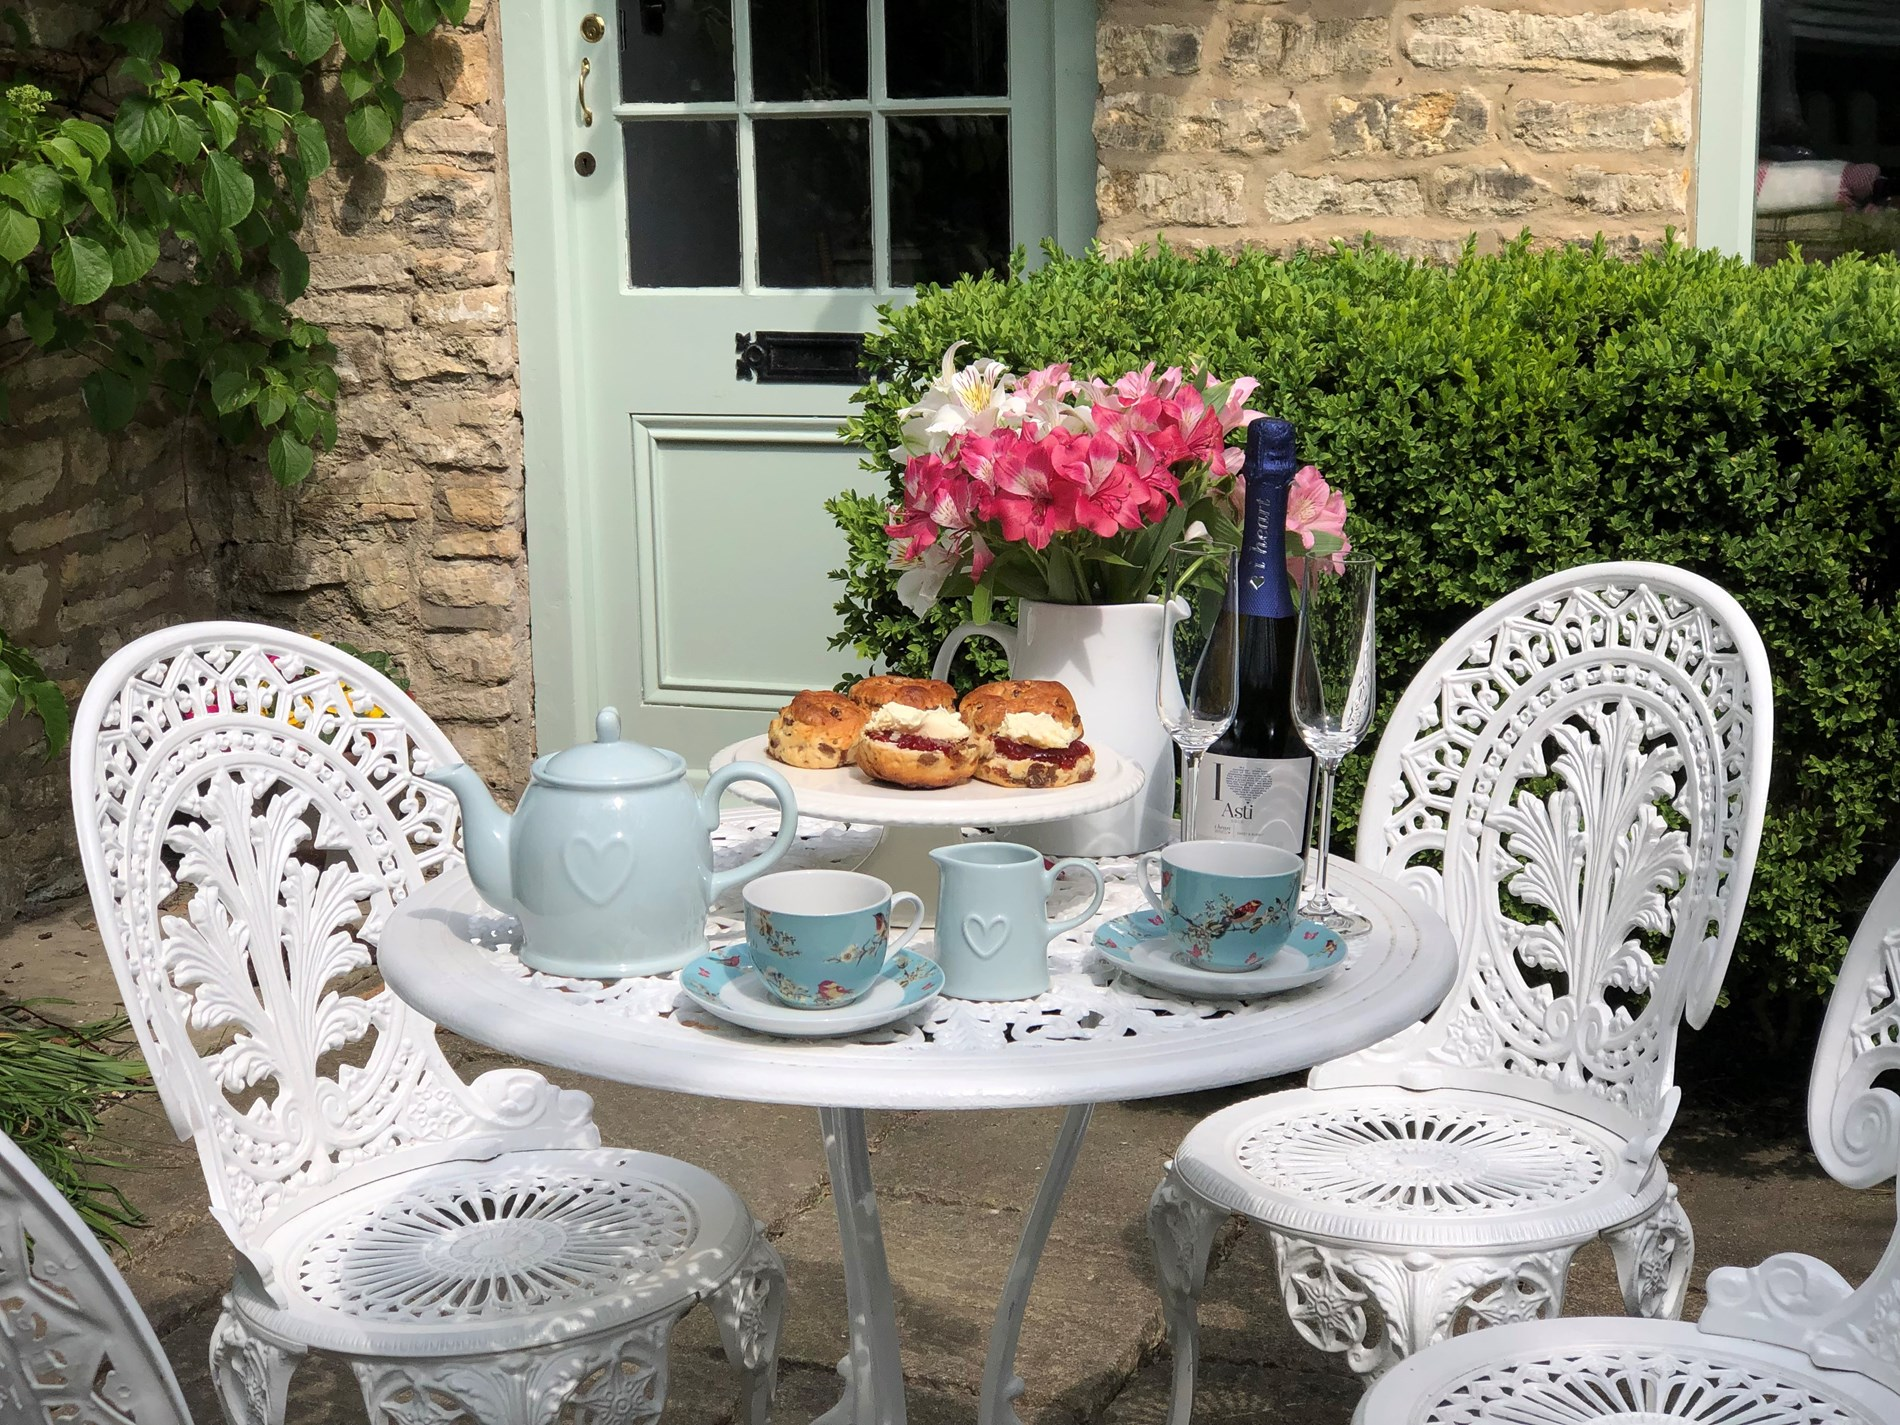 Enjoy some afternoon tea in the walled courtyard to the front of the property